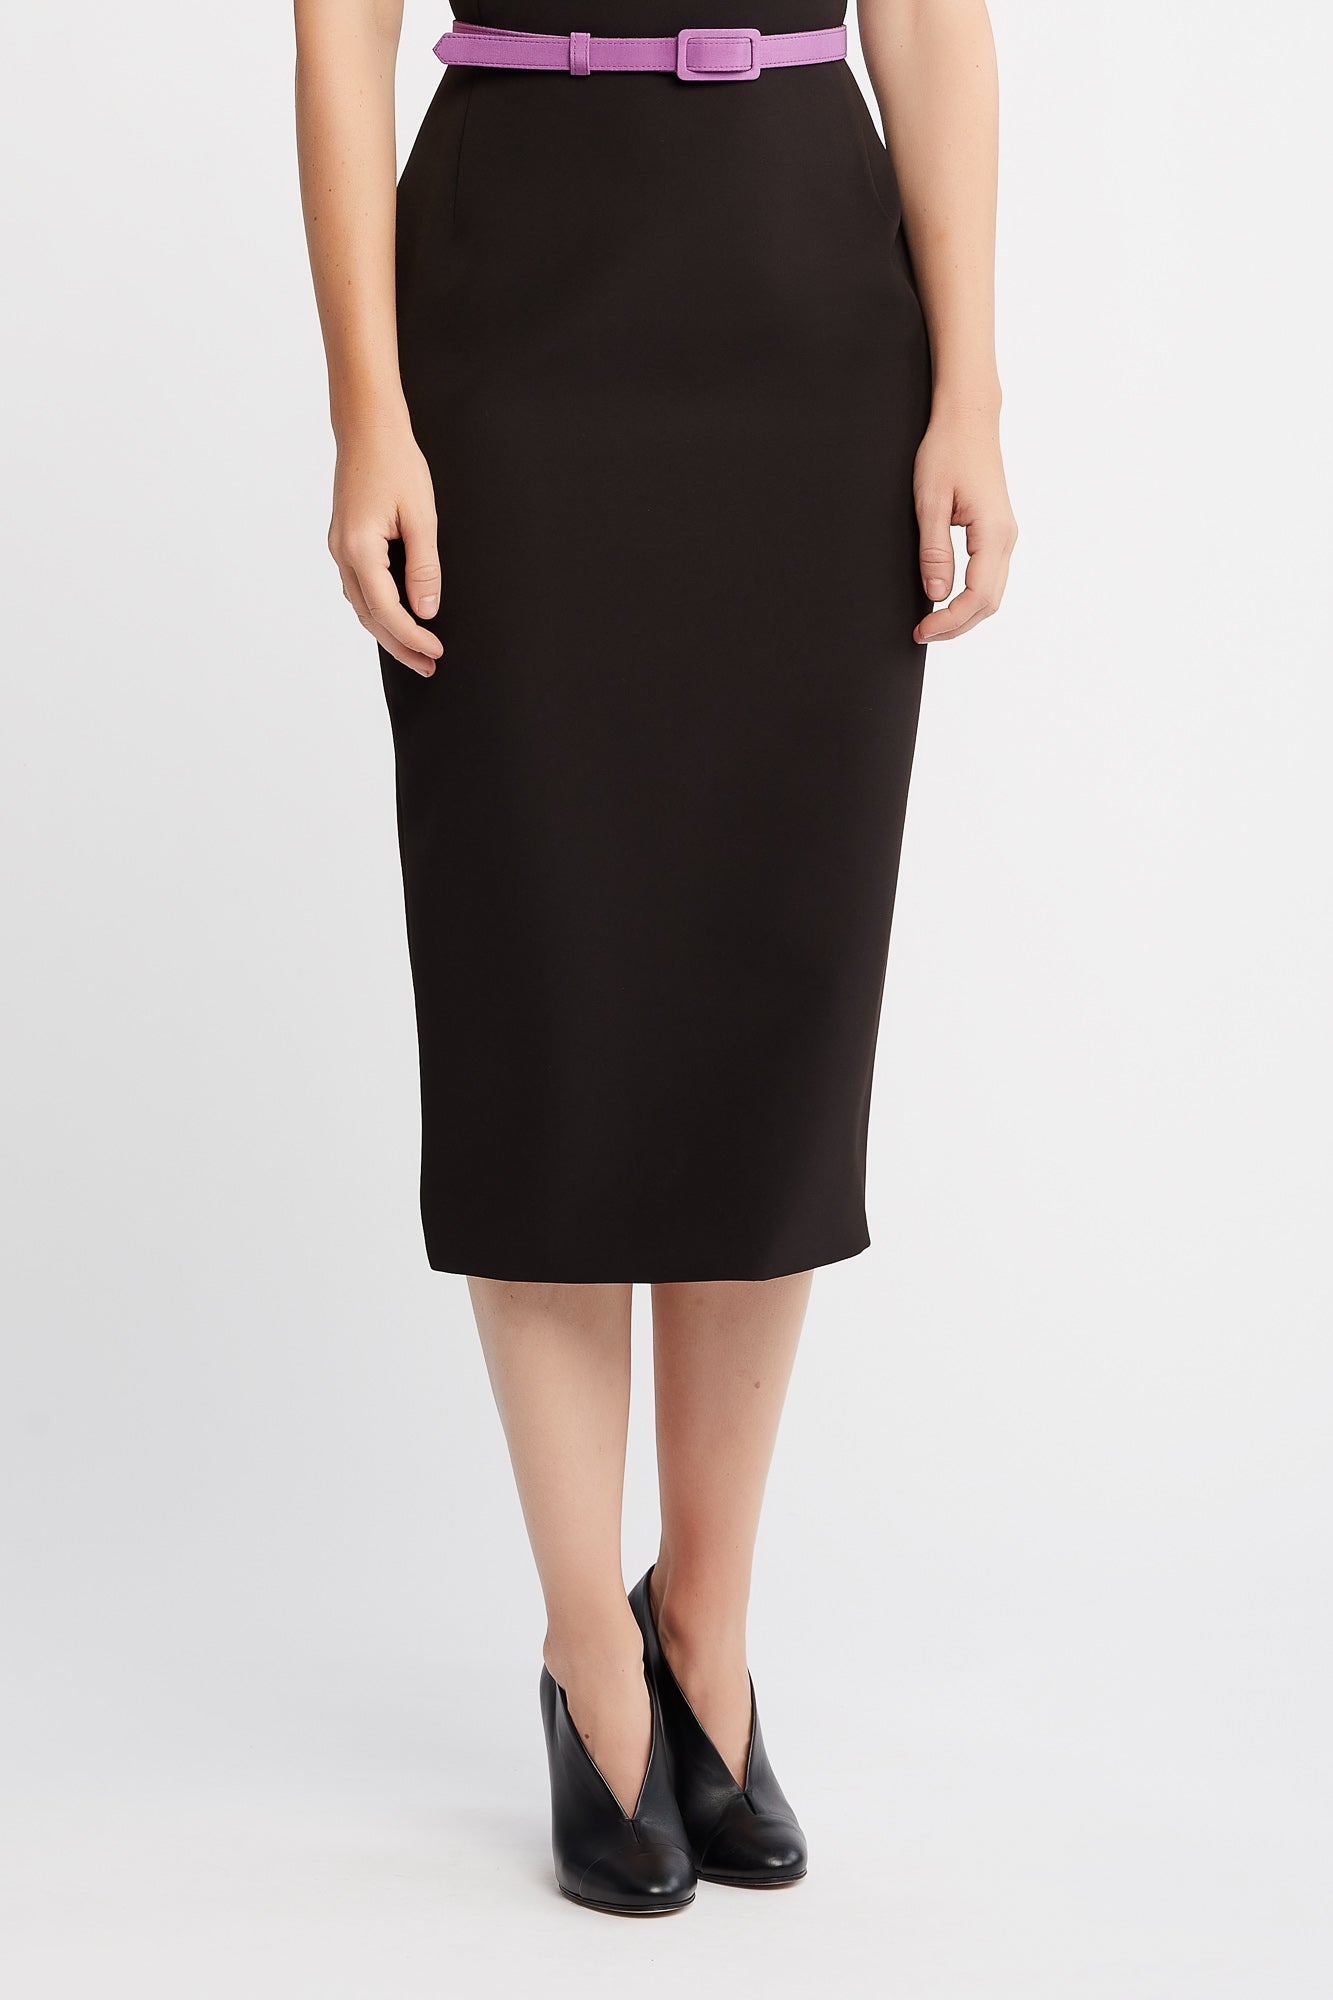 Rima short Sleeve Sheath Black Work Dress with Contrasting Silk Collar